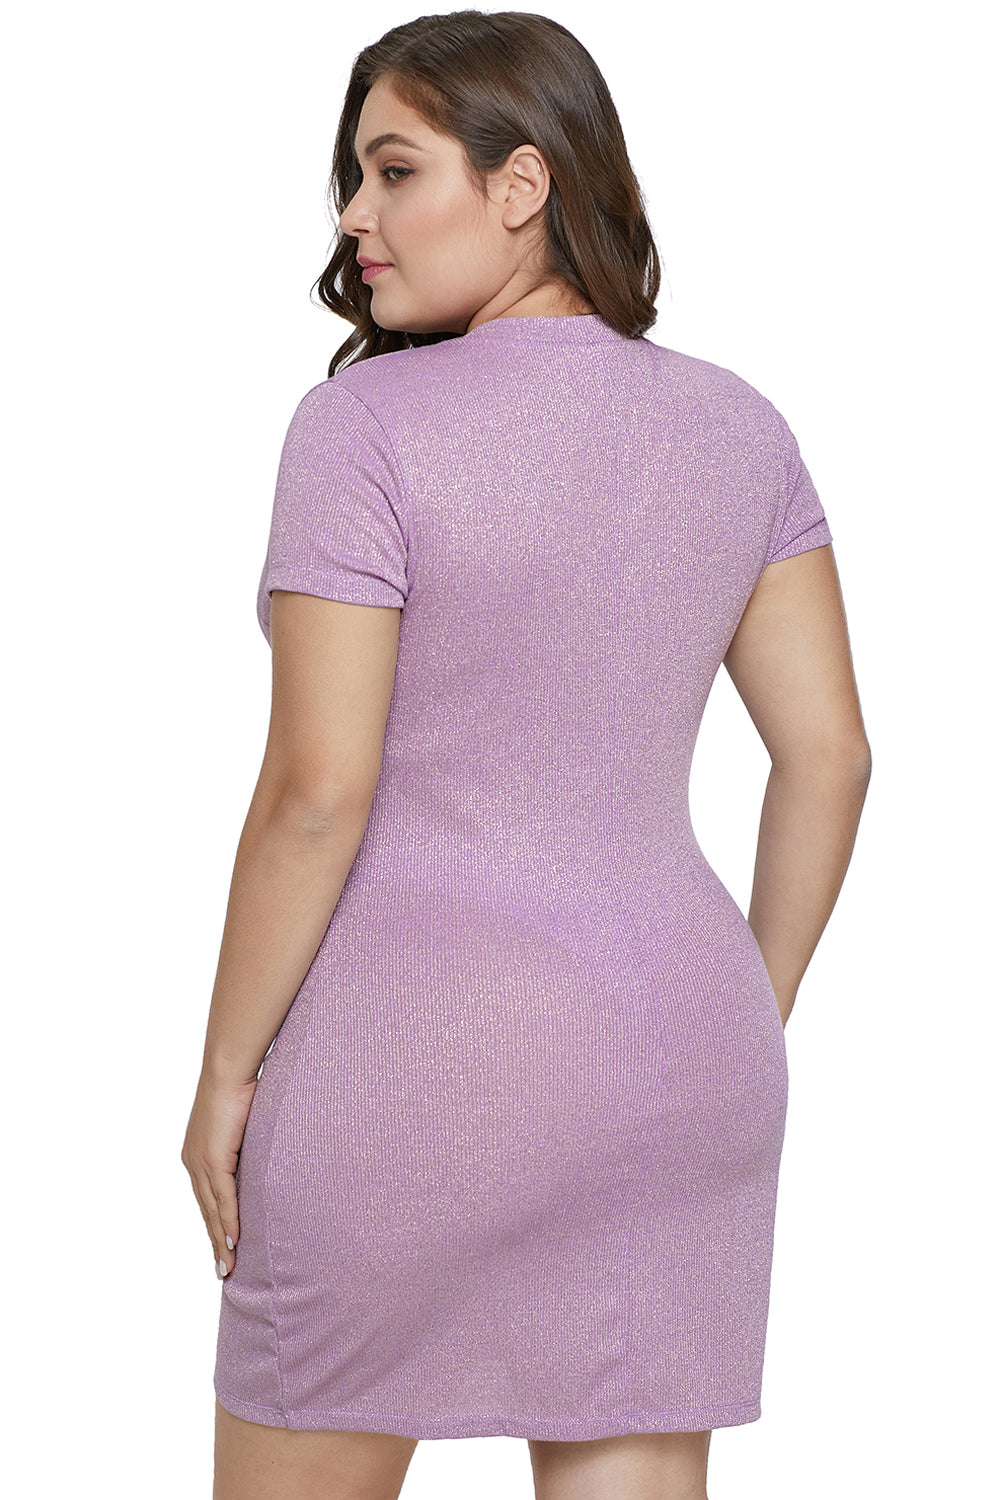 Purple Metallic Look Plus Size Dress